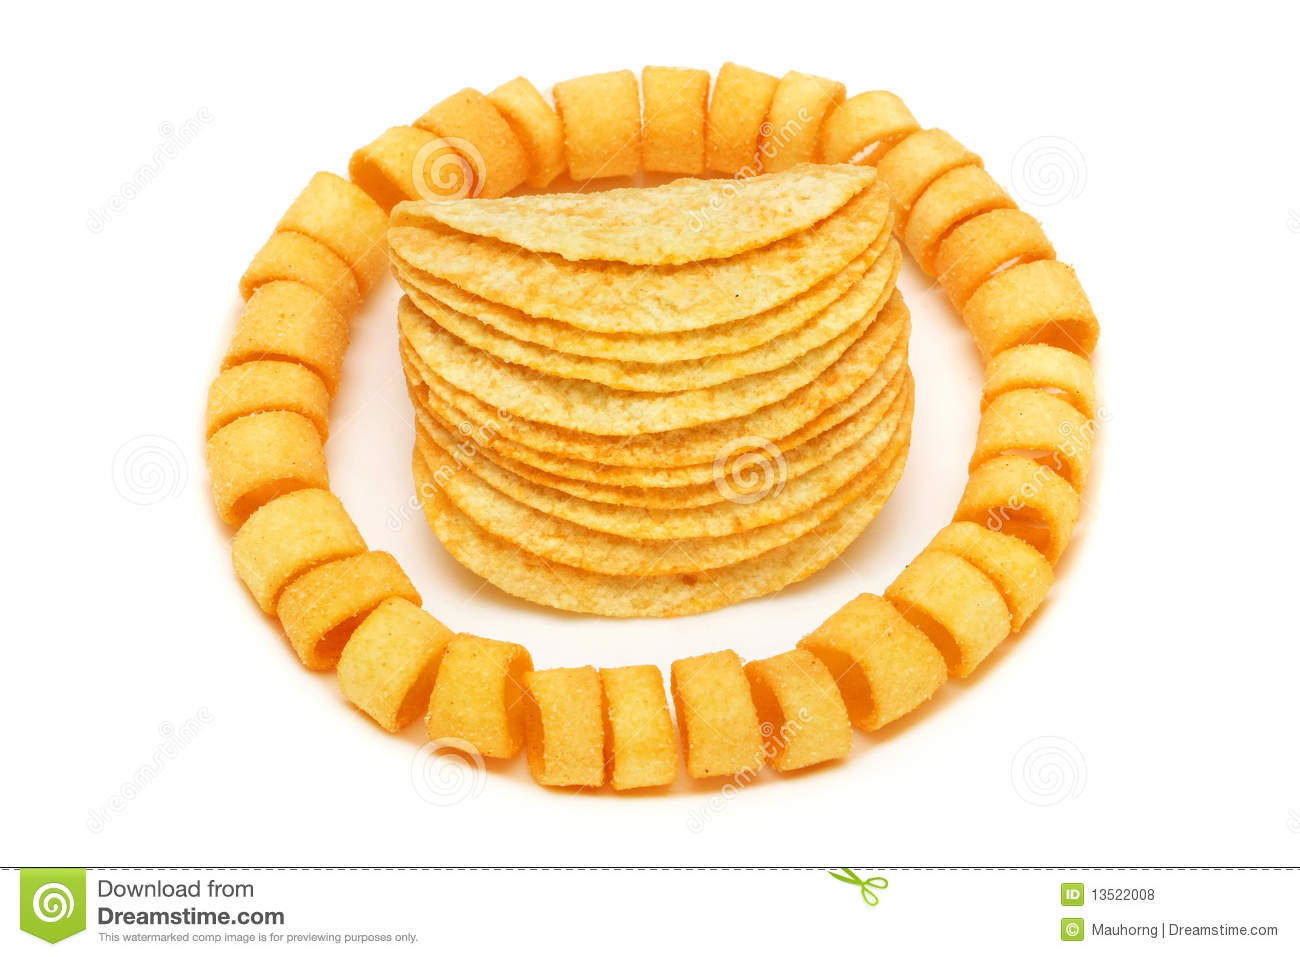 Potato Rings And Chips Royalty Free Stock Photos - Image: 13522008